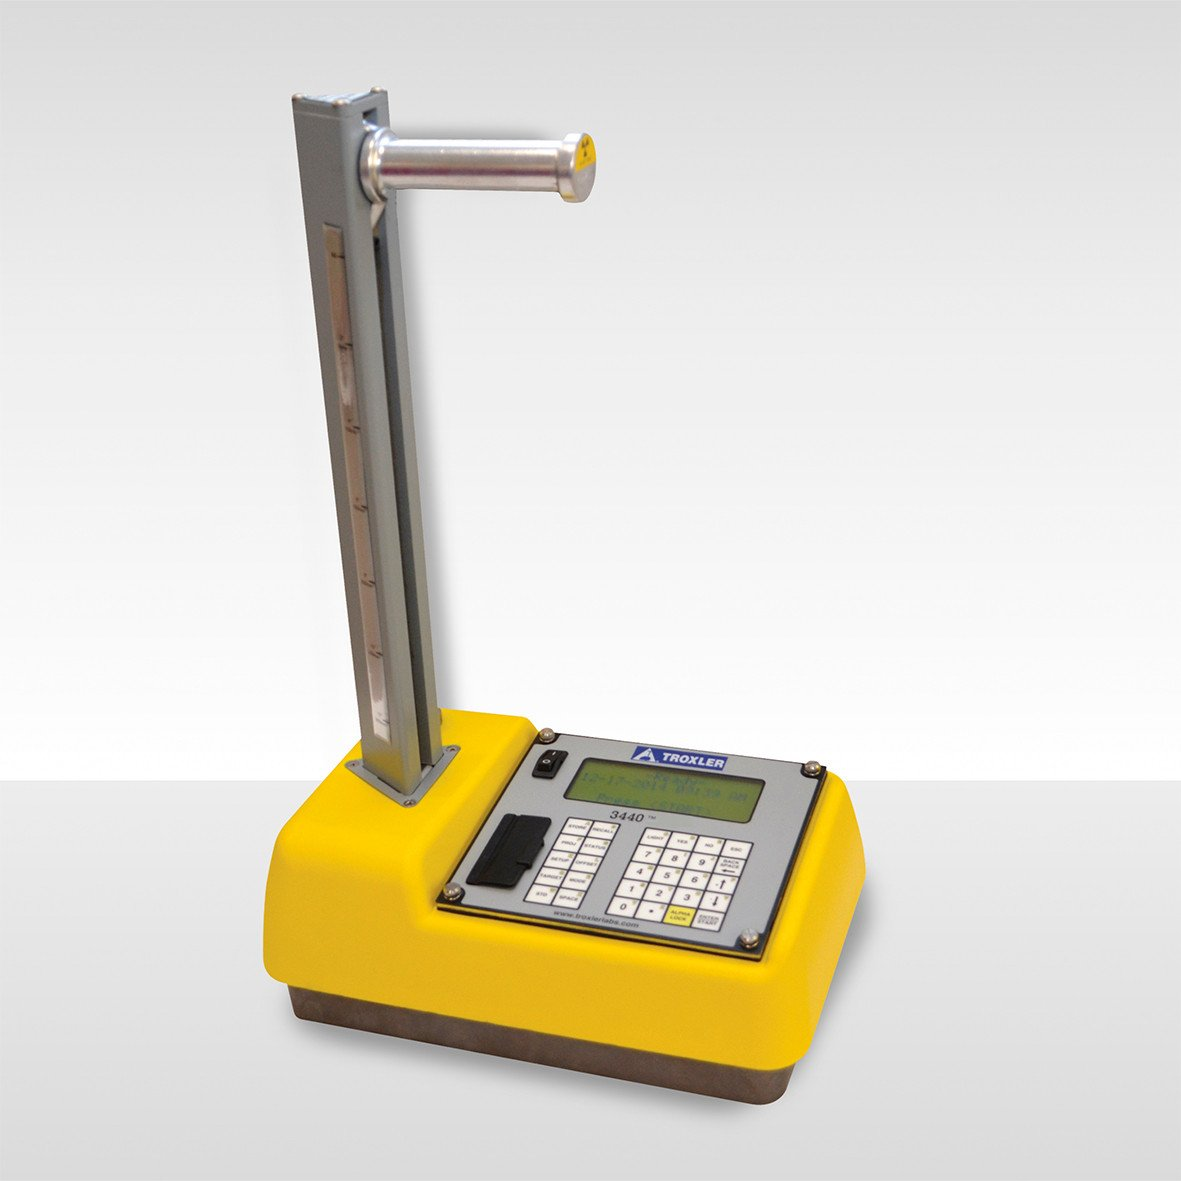 Density Testing Roadreader Nuclear Density Gauges Compacted Road Base And